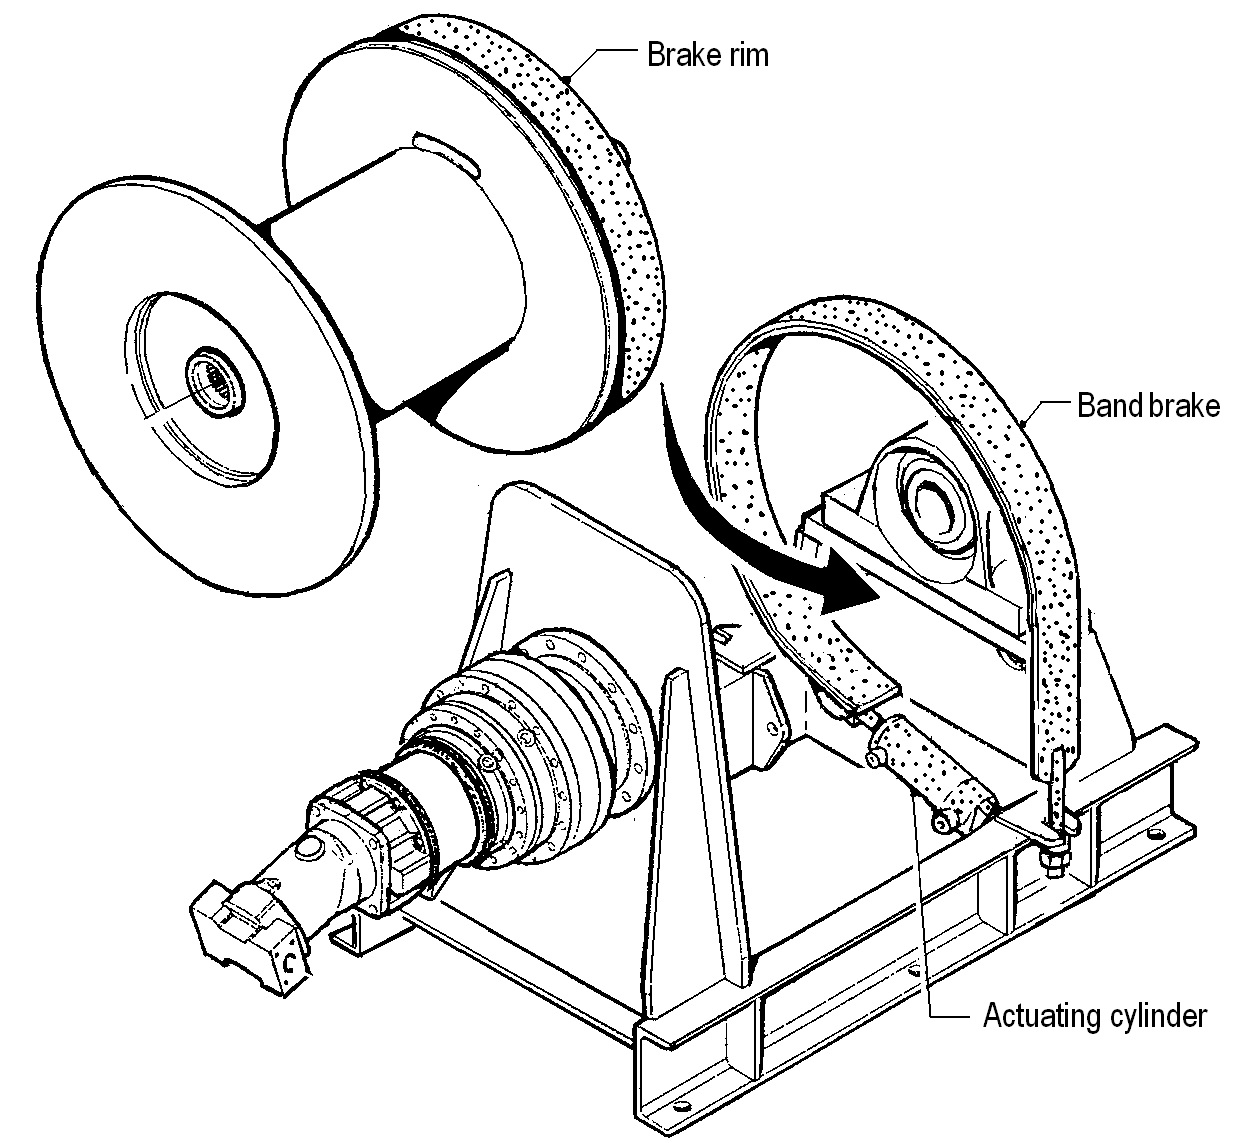 About Winches Emc Drum Winch Wiring Diagram Figure 14 Typical Automatic Bandbrake Hydraulically Actuated